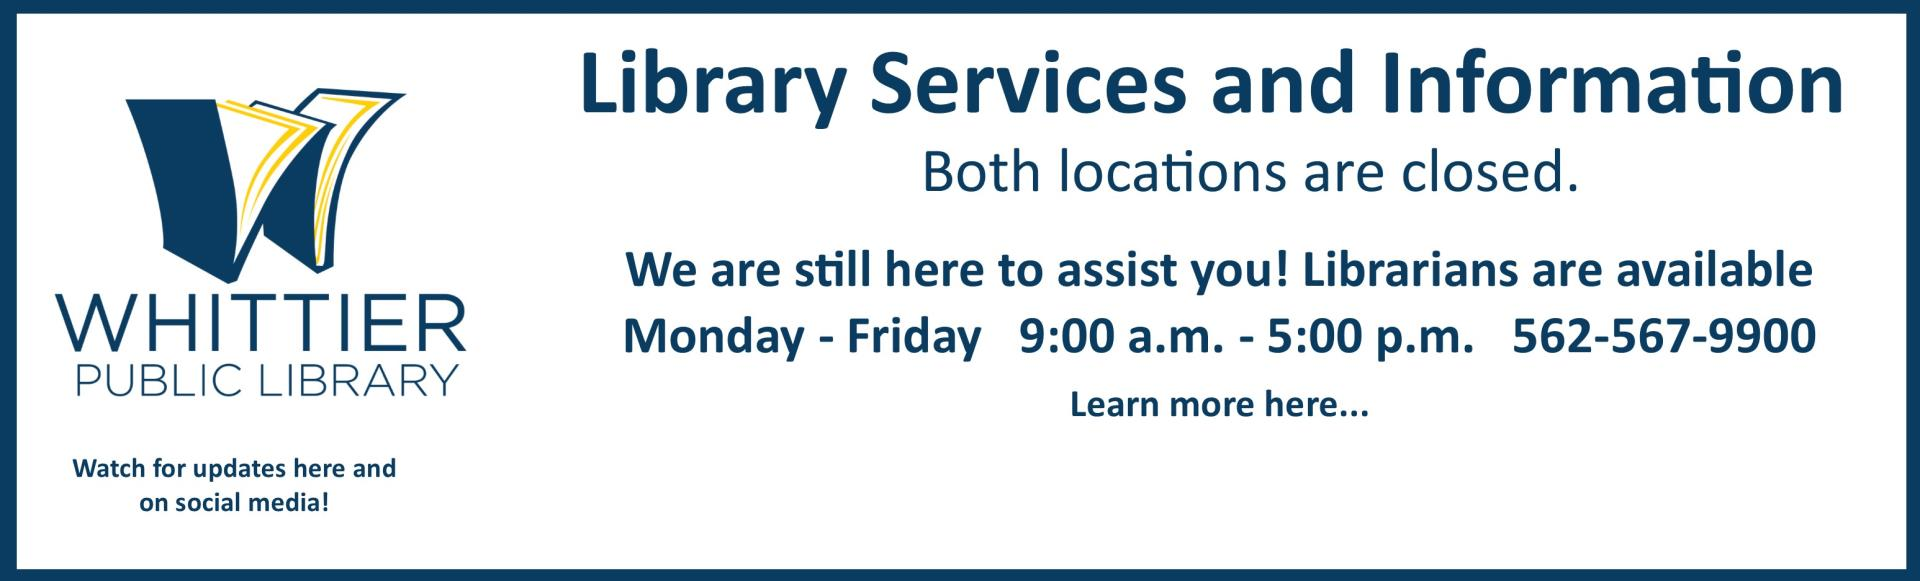 Library services and Information -Whittier Public Library Logo both locations are closed. We are here to assist you- Librarians are available Monday-Friday 9am to 5 pm Learn more here